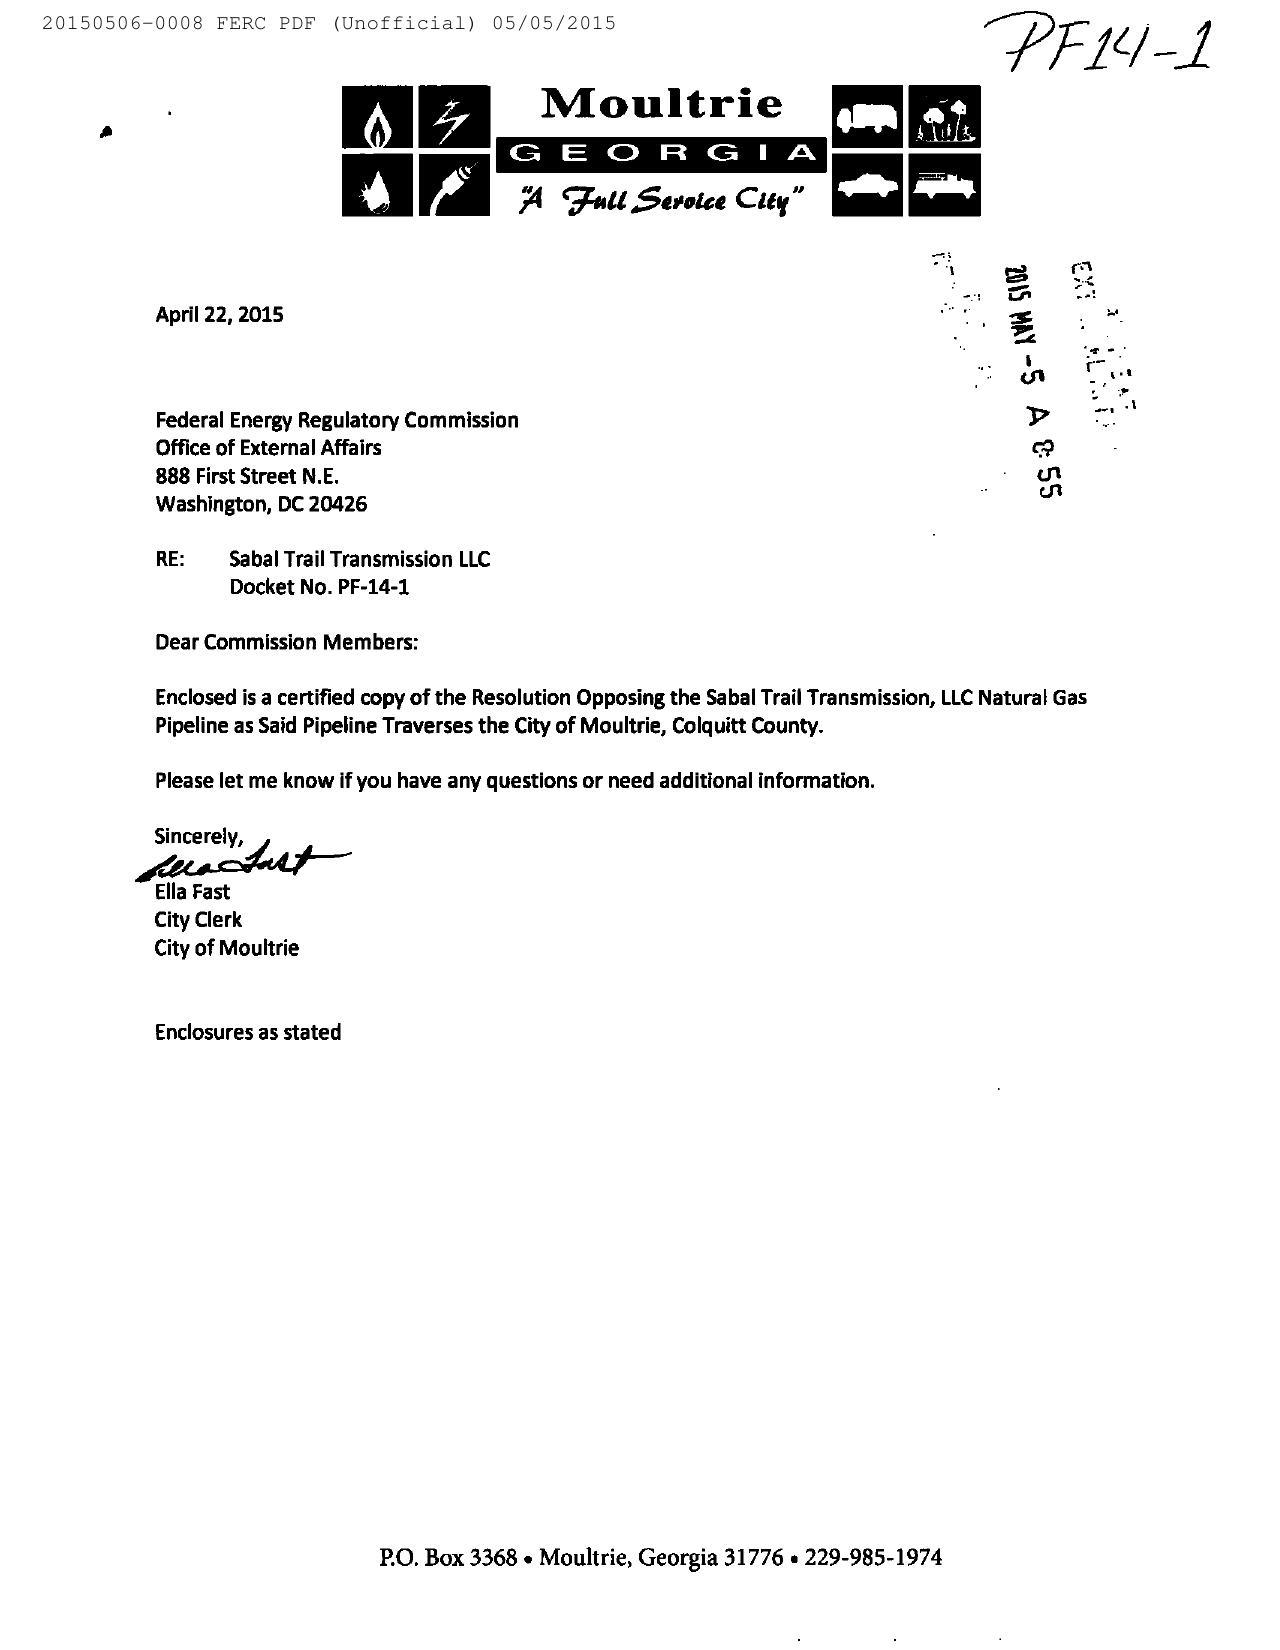 12801650 cover letter by ella fast city clerk in moultrie ga resolution against sabal trail by john s quarterman for spectrabustersorg 6 may 2015 - Fast Cover Letter